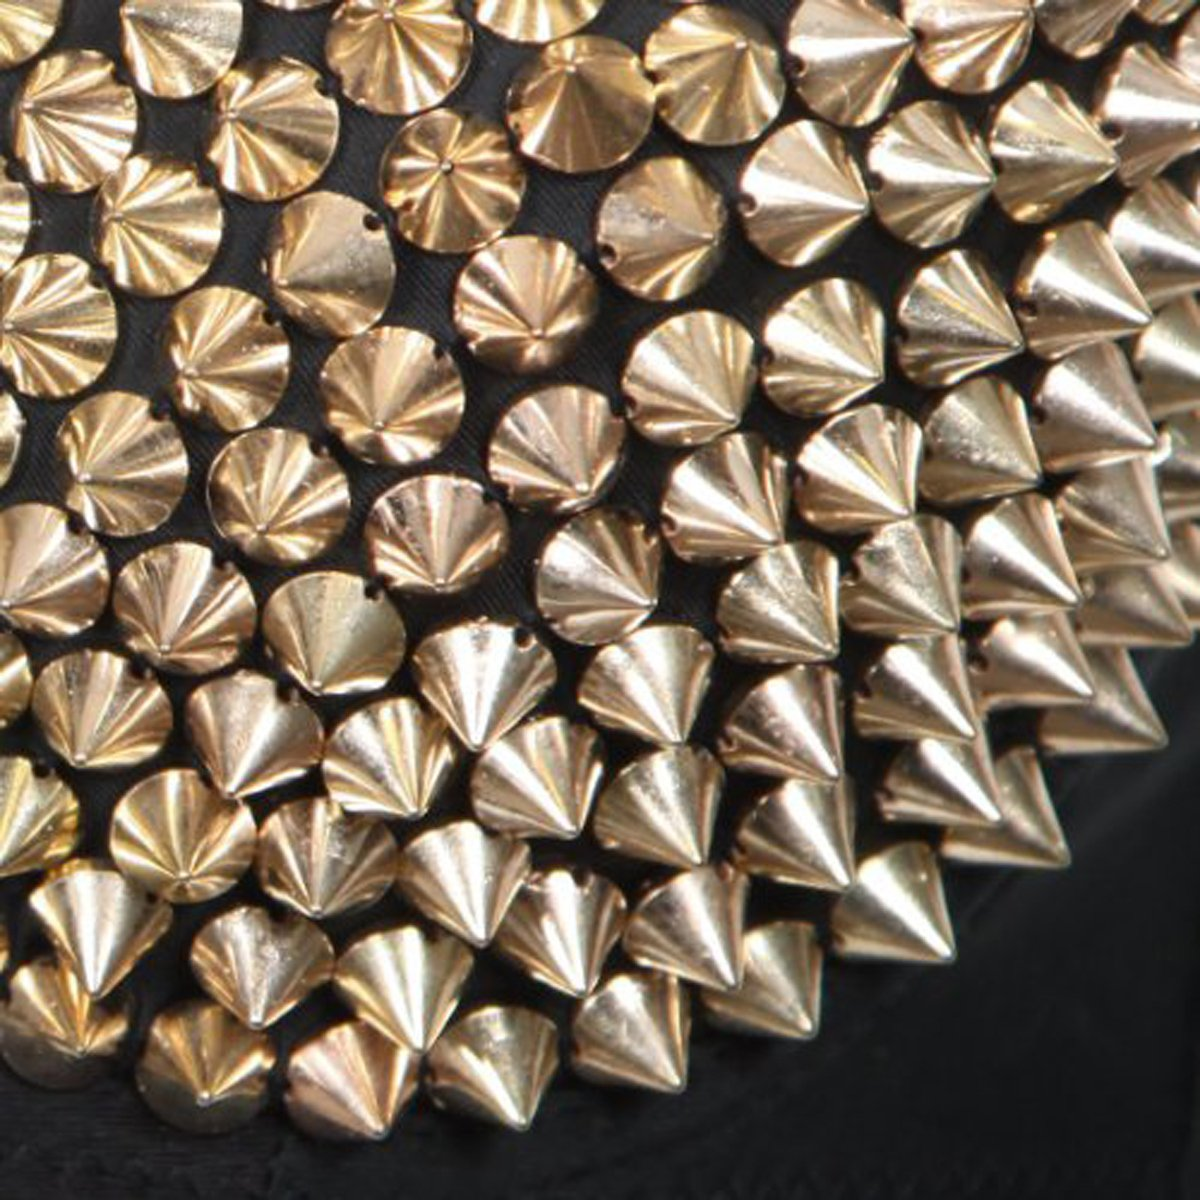 DIY Garments Beads Glue On Paradise Kiss Approx 100pcs 10mm Gold Acrylic Bullet Spike Cone Studs Gold100 Bags /& Shoes Embellishment Sew On Stick On